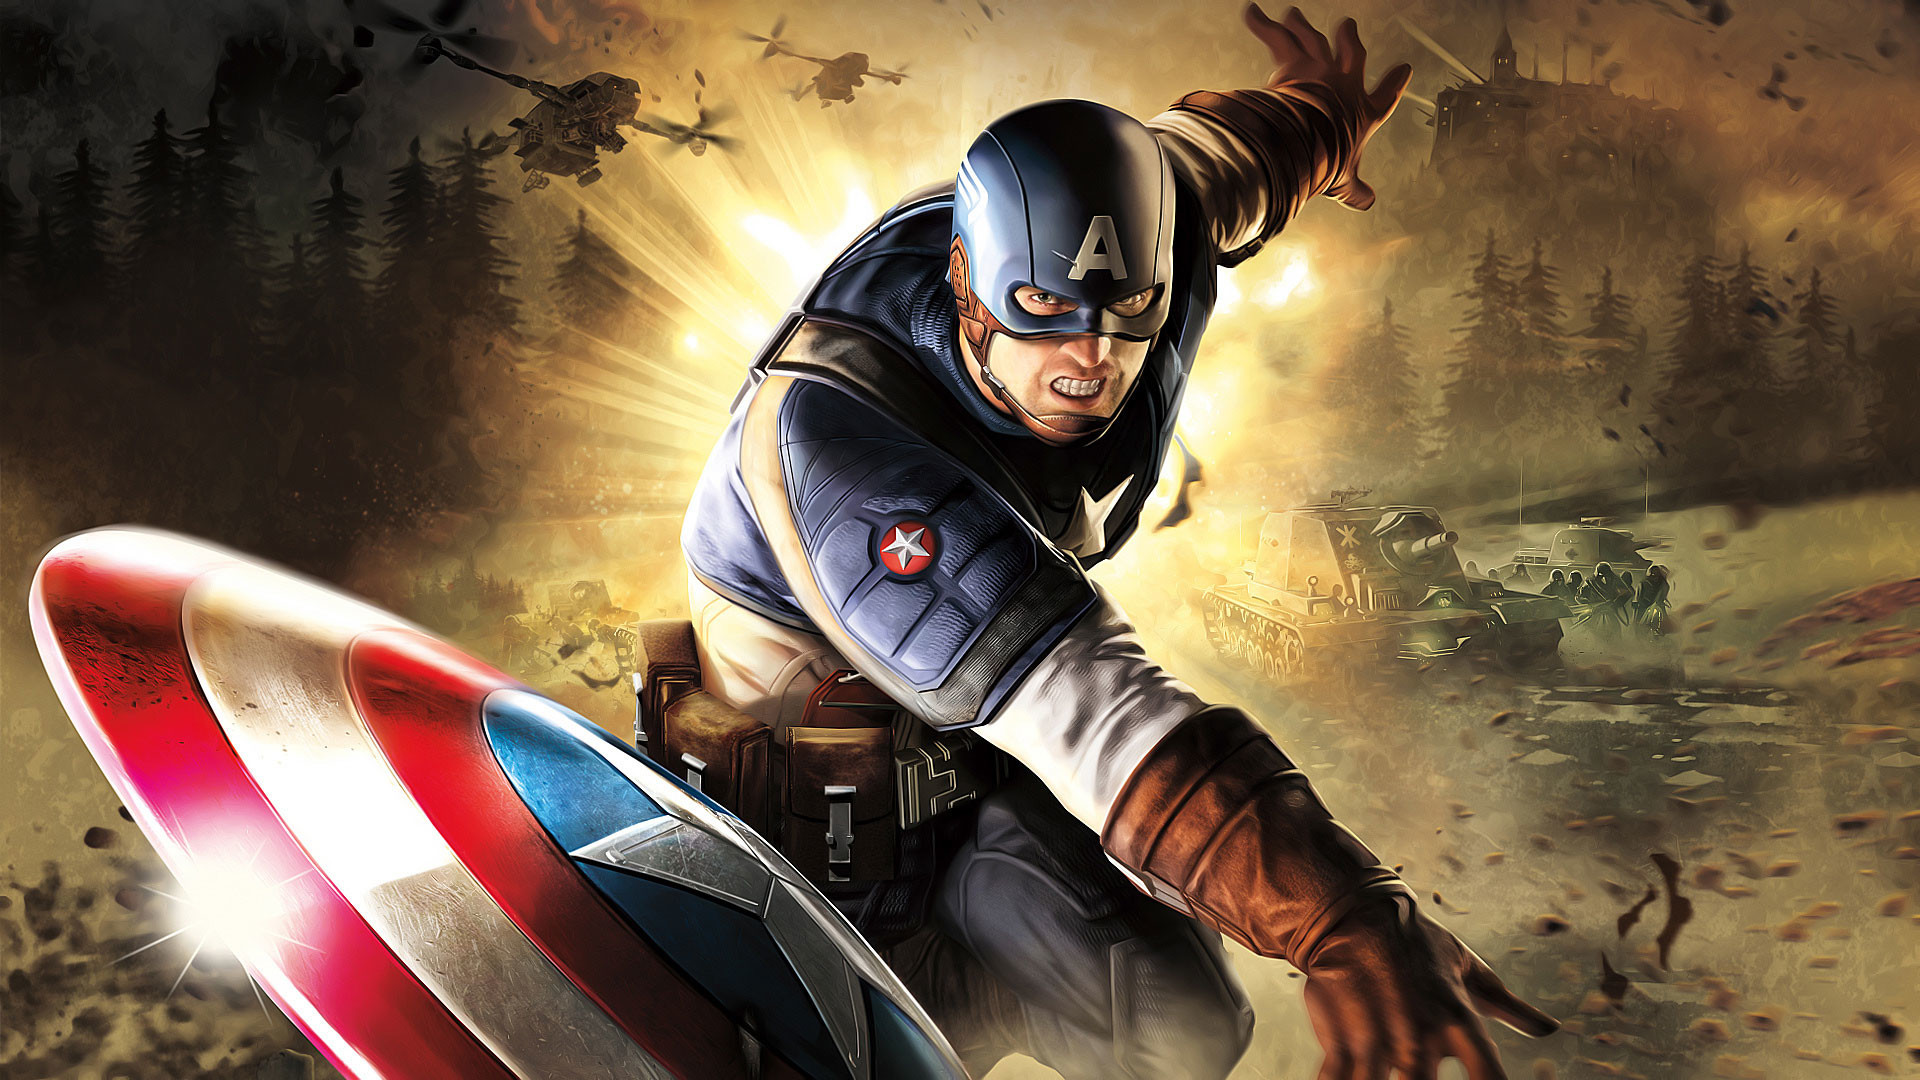 hd pics photos best captain america shield hollywood movie hd quality  desktop background wallpaper